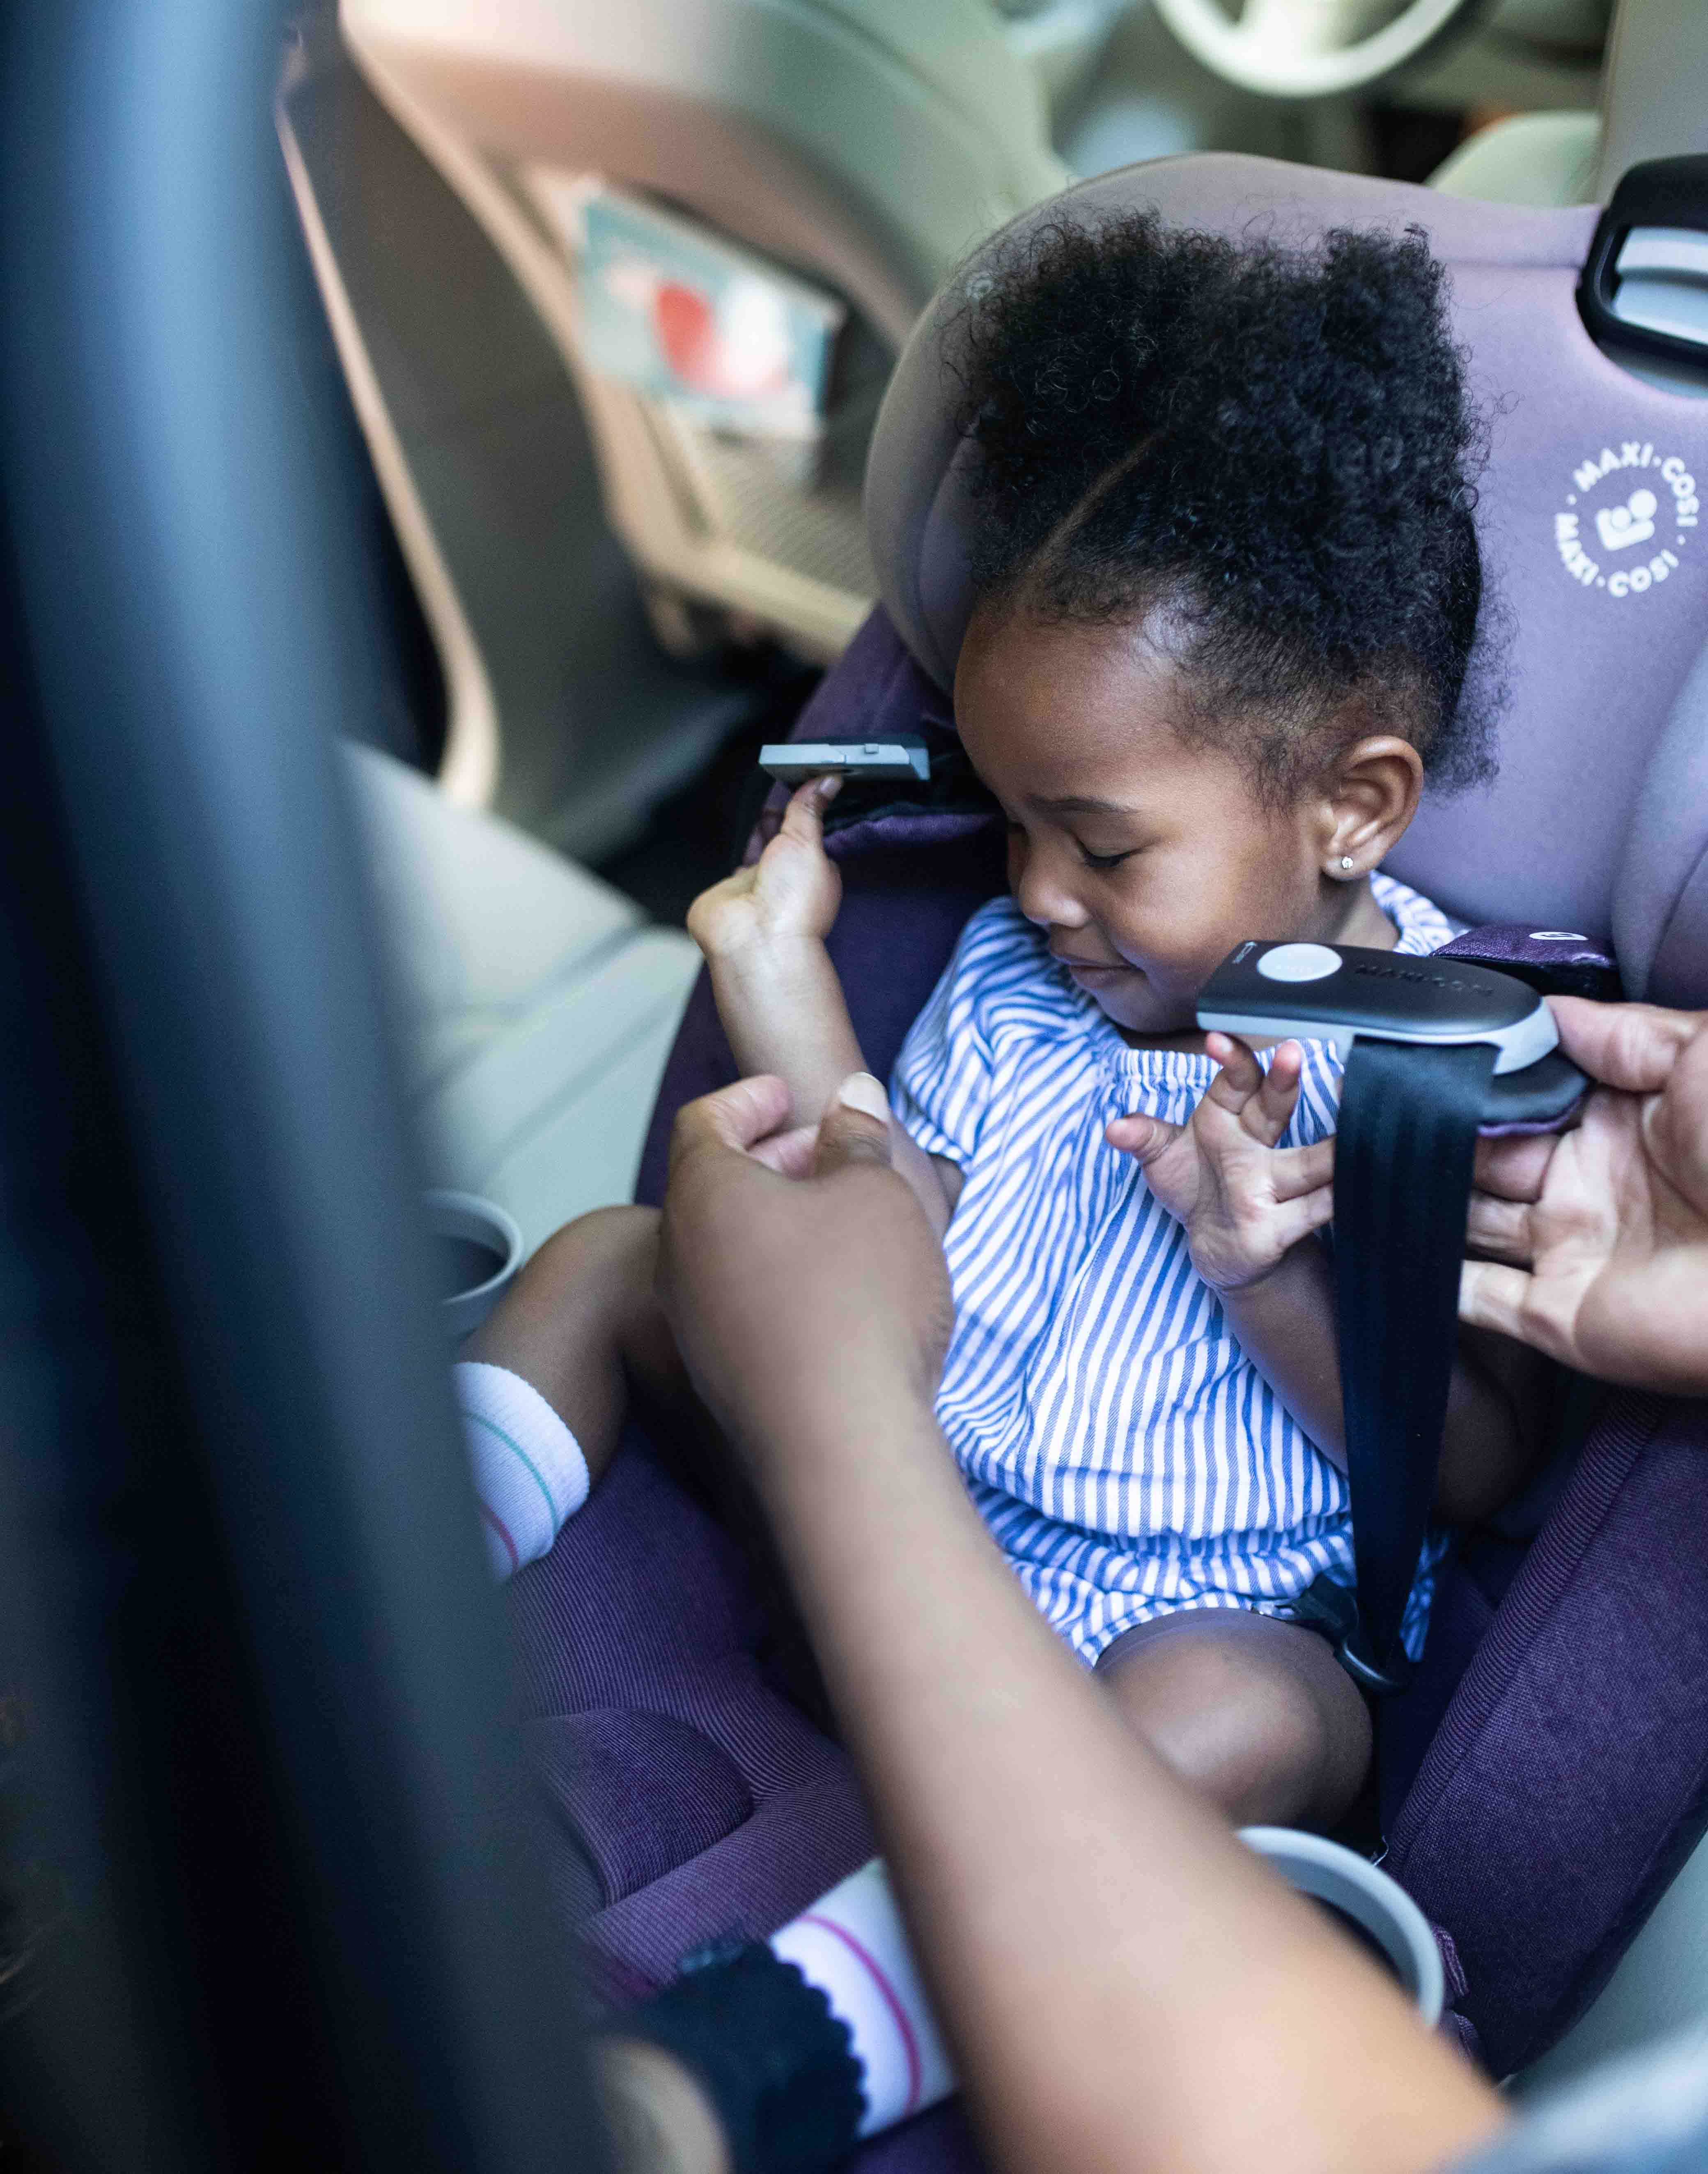 Little girl helping her parent buckle her into car seat